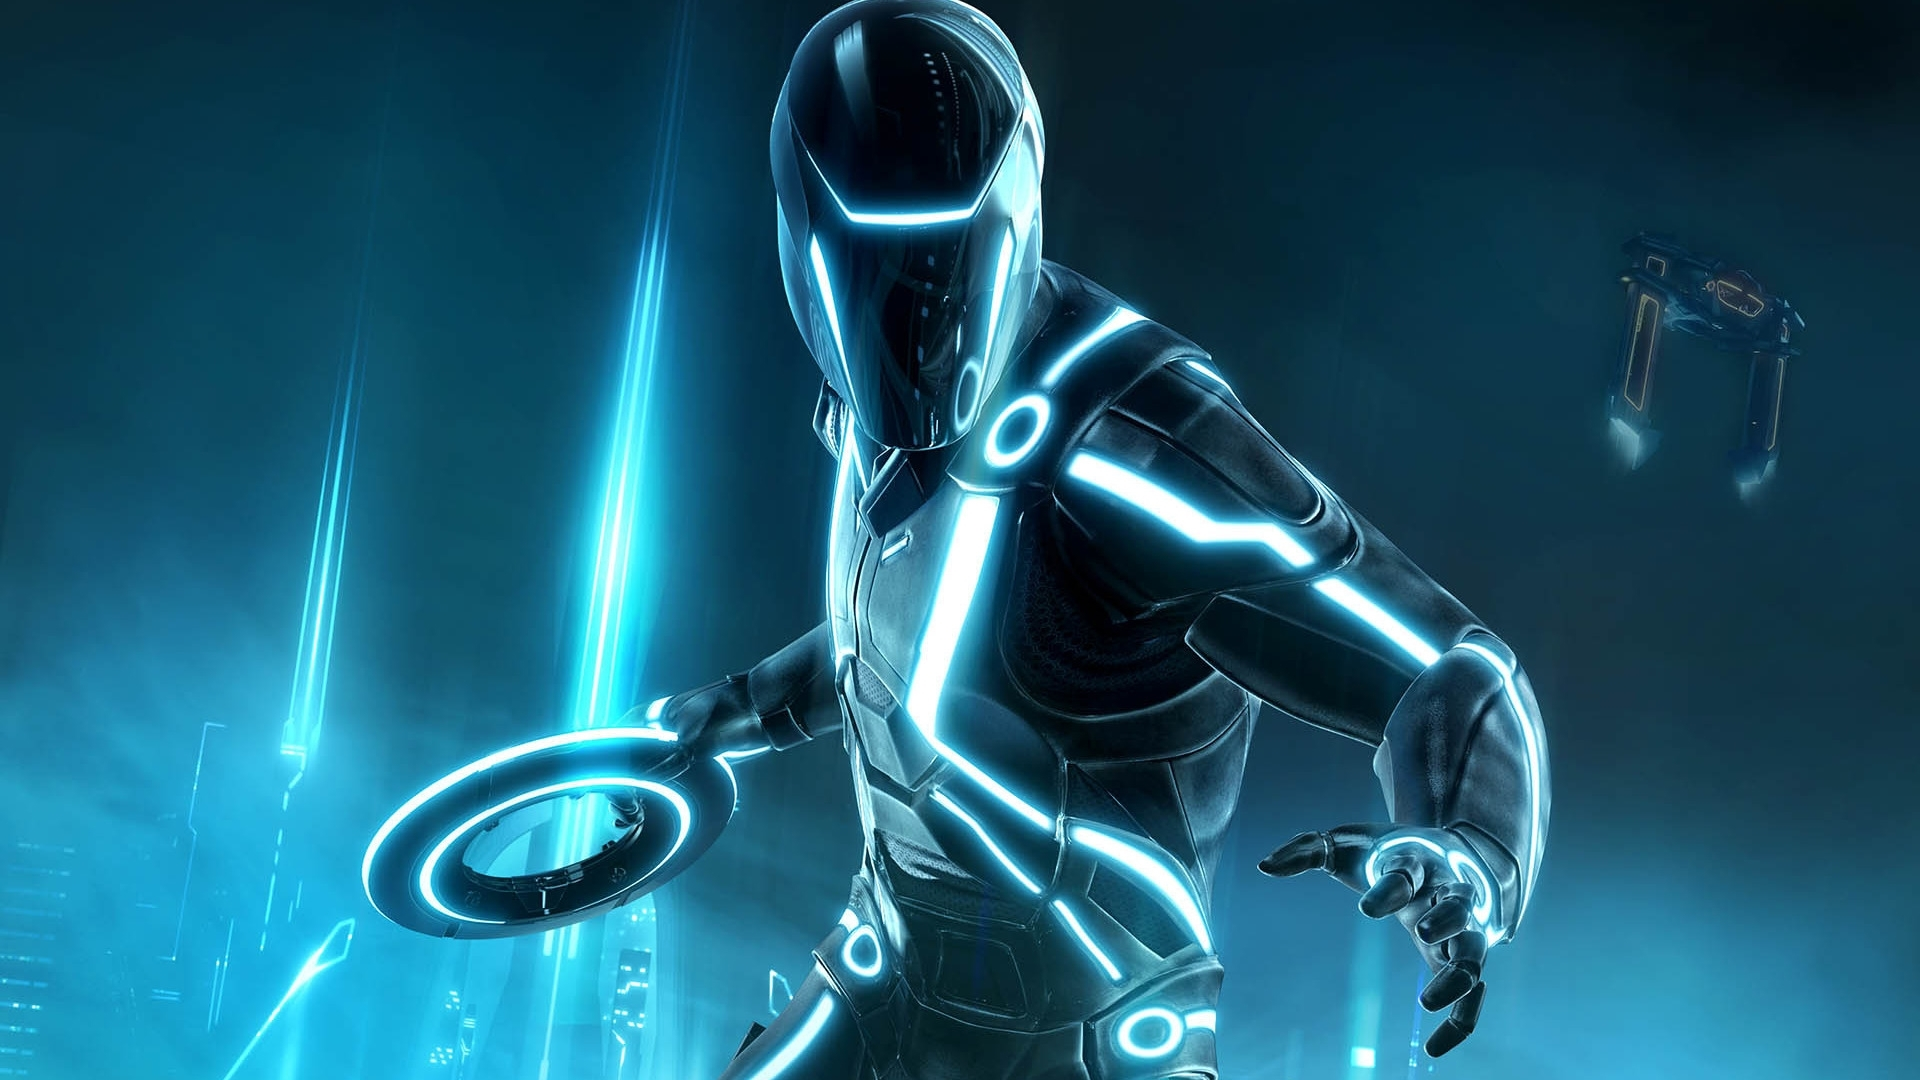 27919 download wallpaper Cinema, Tron screensavers and pictures for free